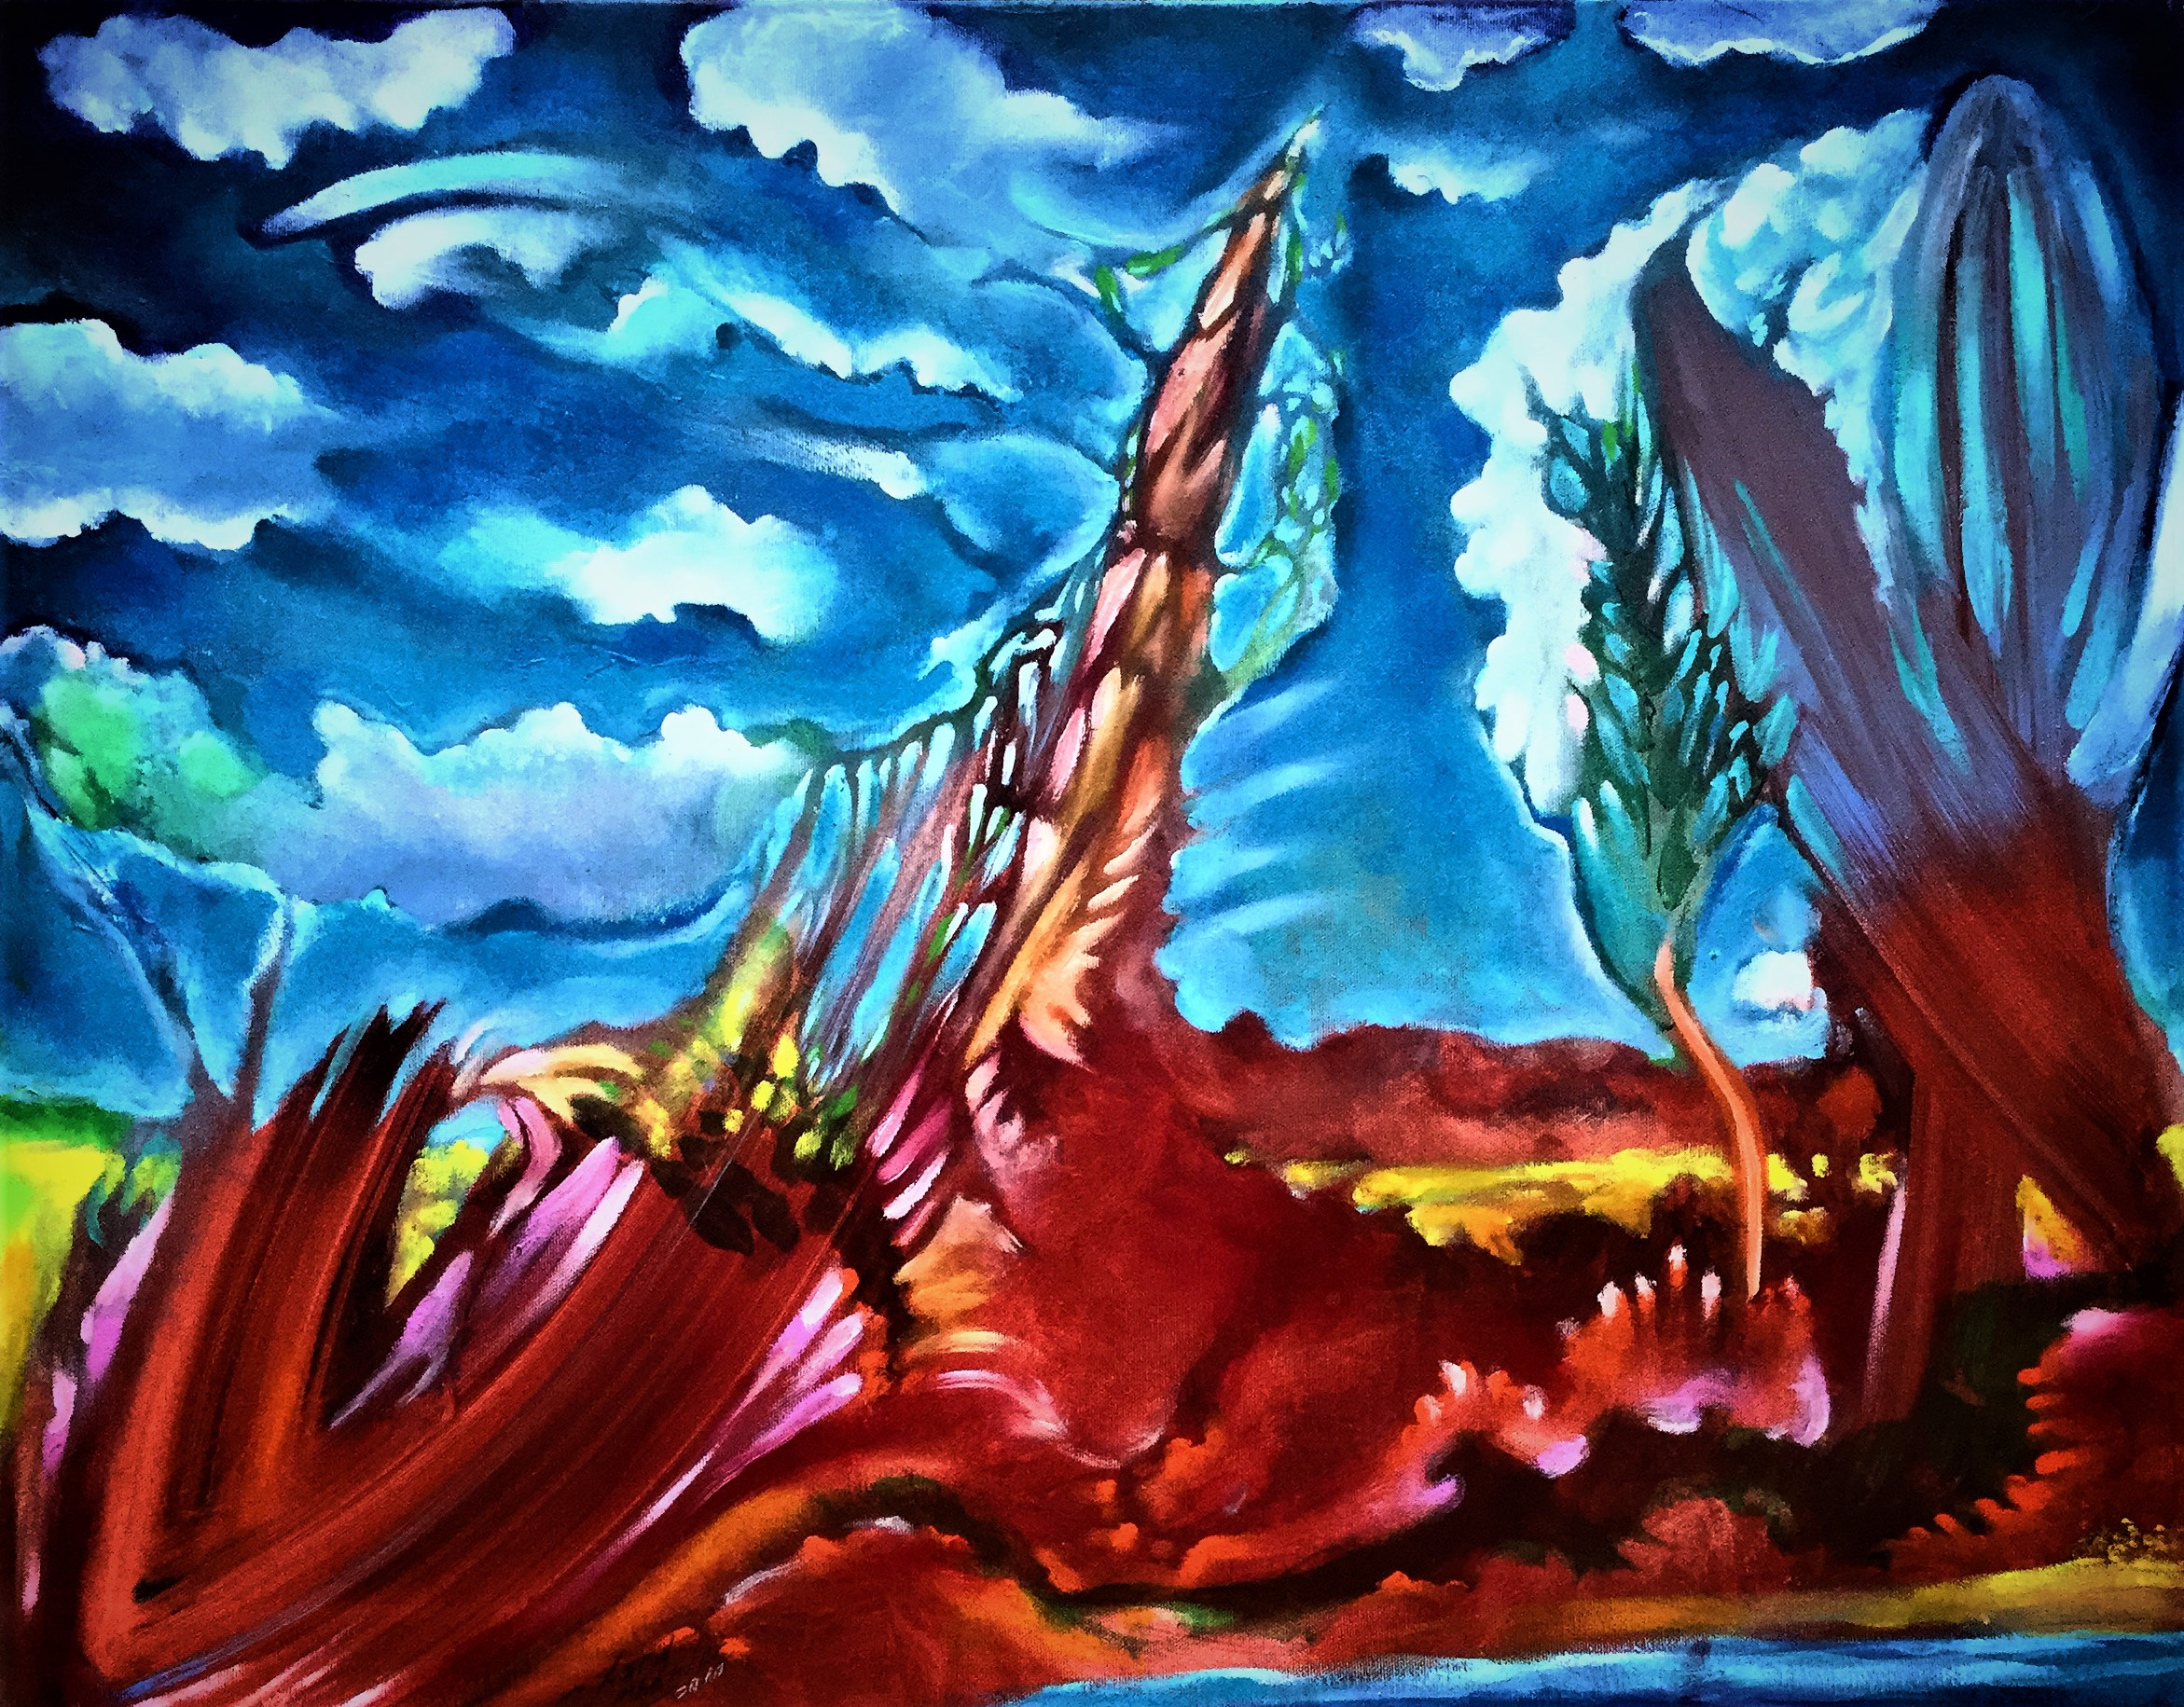 Second-Wind-Oil-and-acrylic-on-canvas-28-in-x-22-in